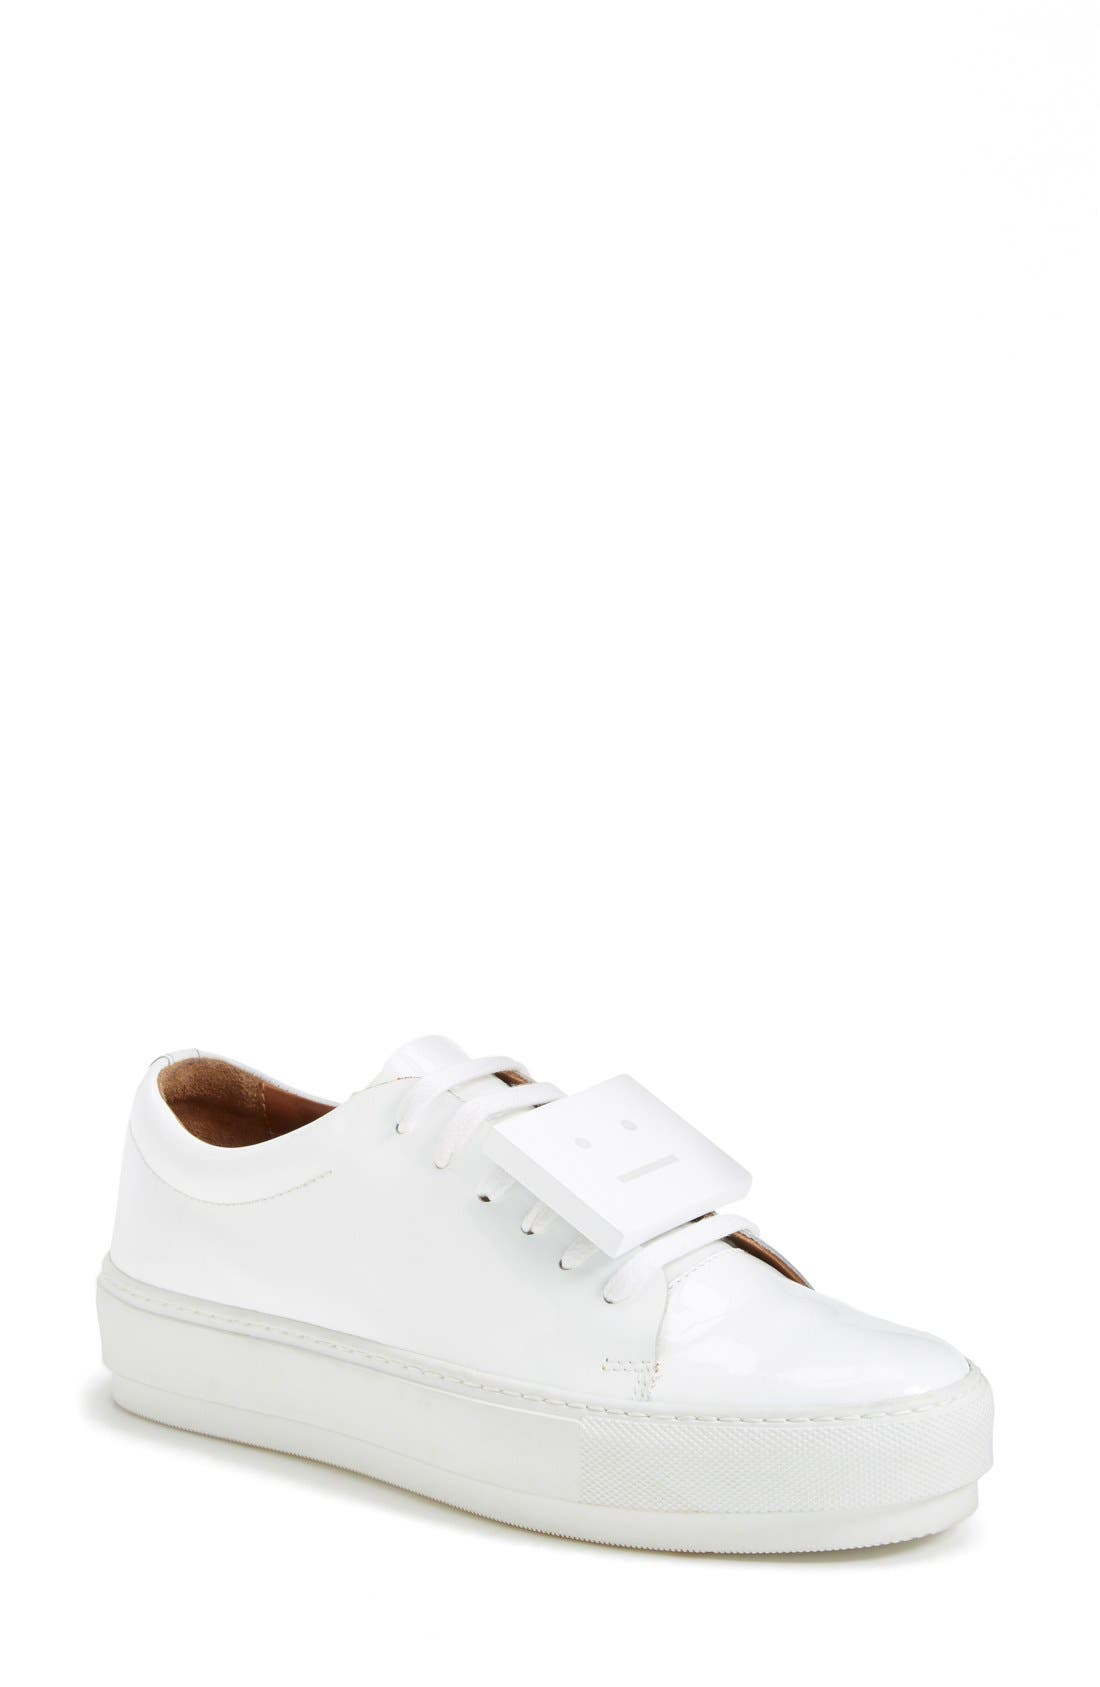 Adriana Leather Sneaker,                         Main,                         color,